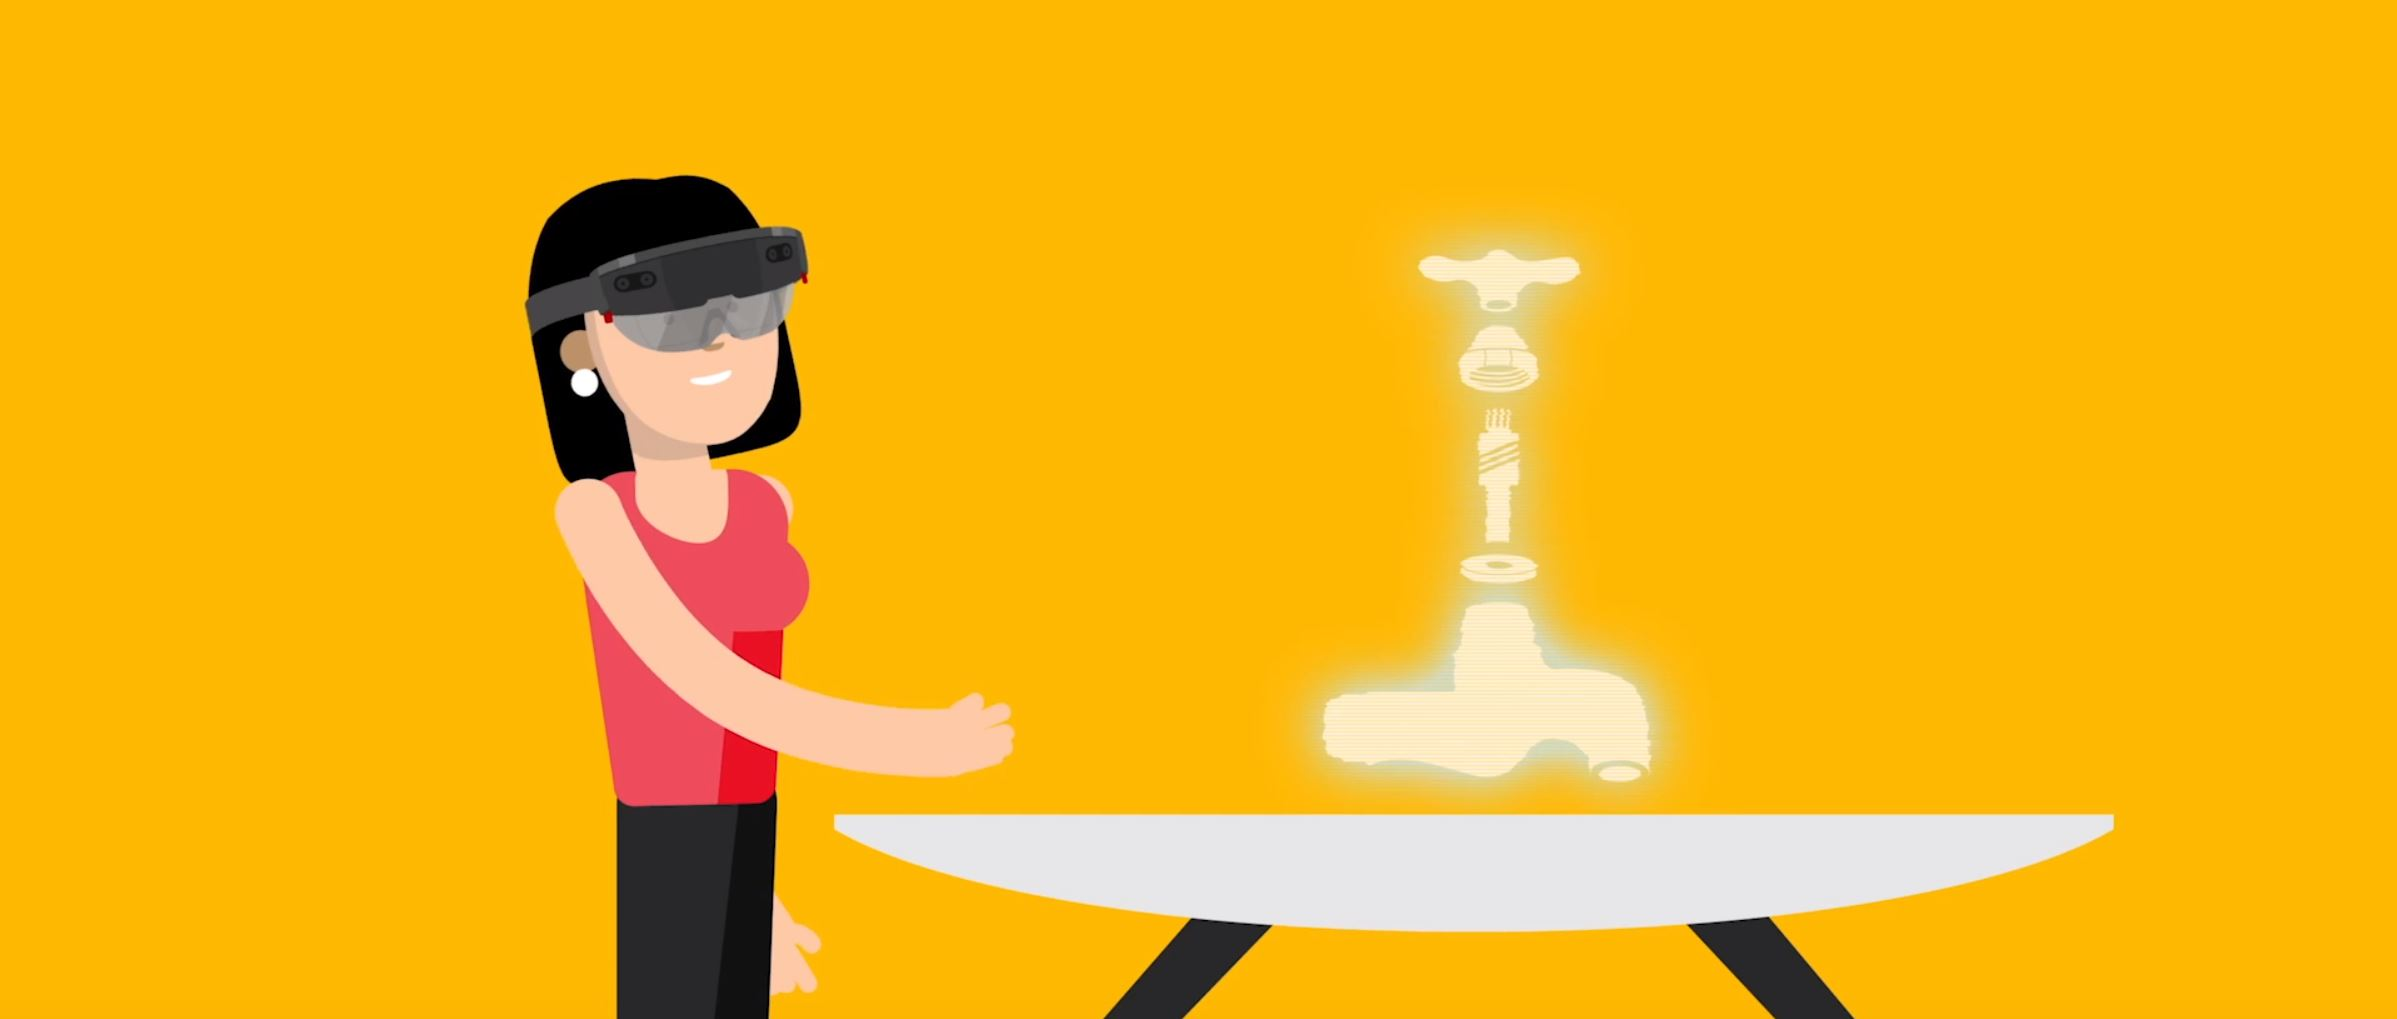 2D character animation image 3 for Microsoft Innovation - manufacturing project